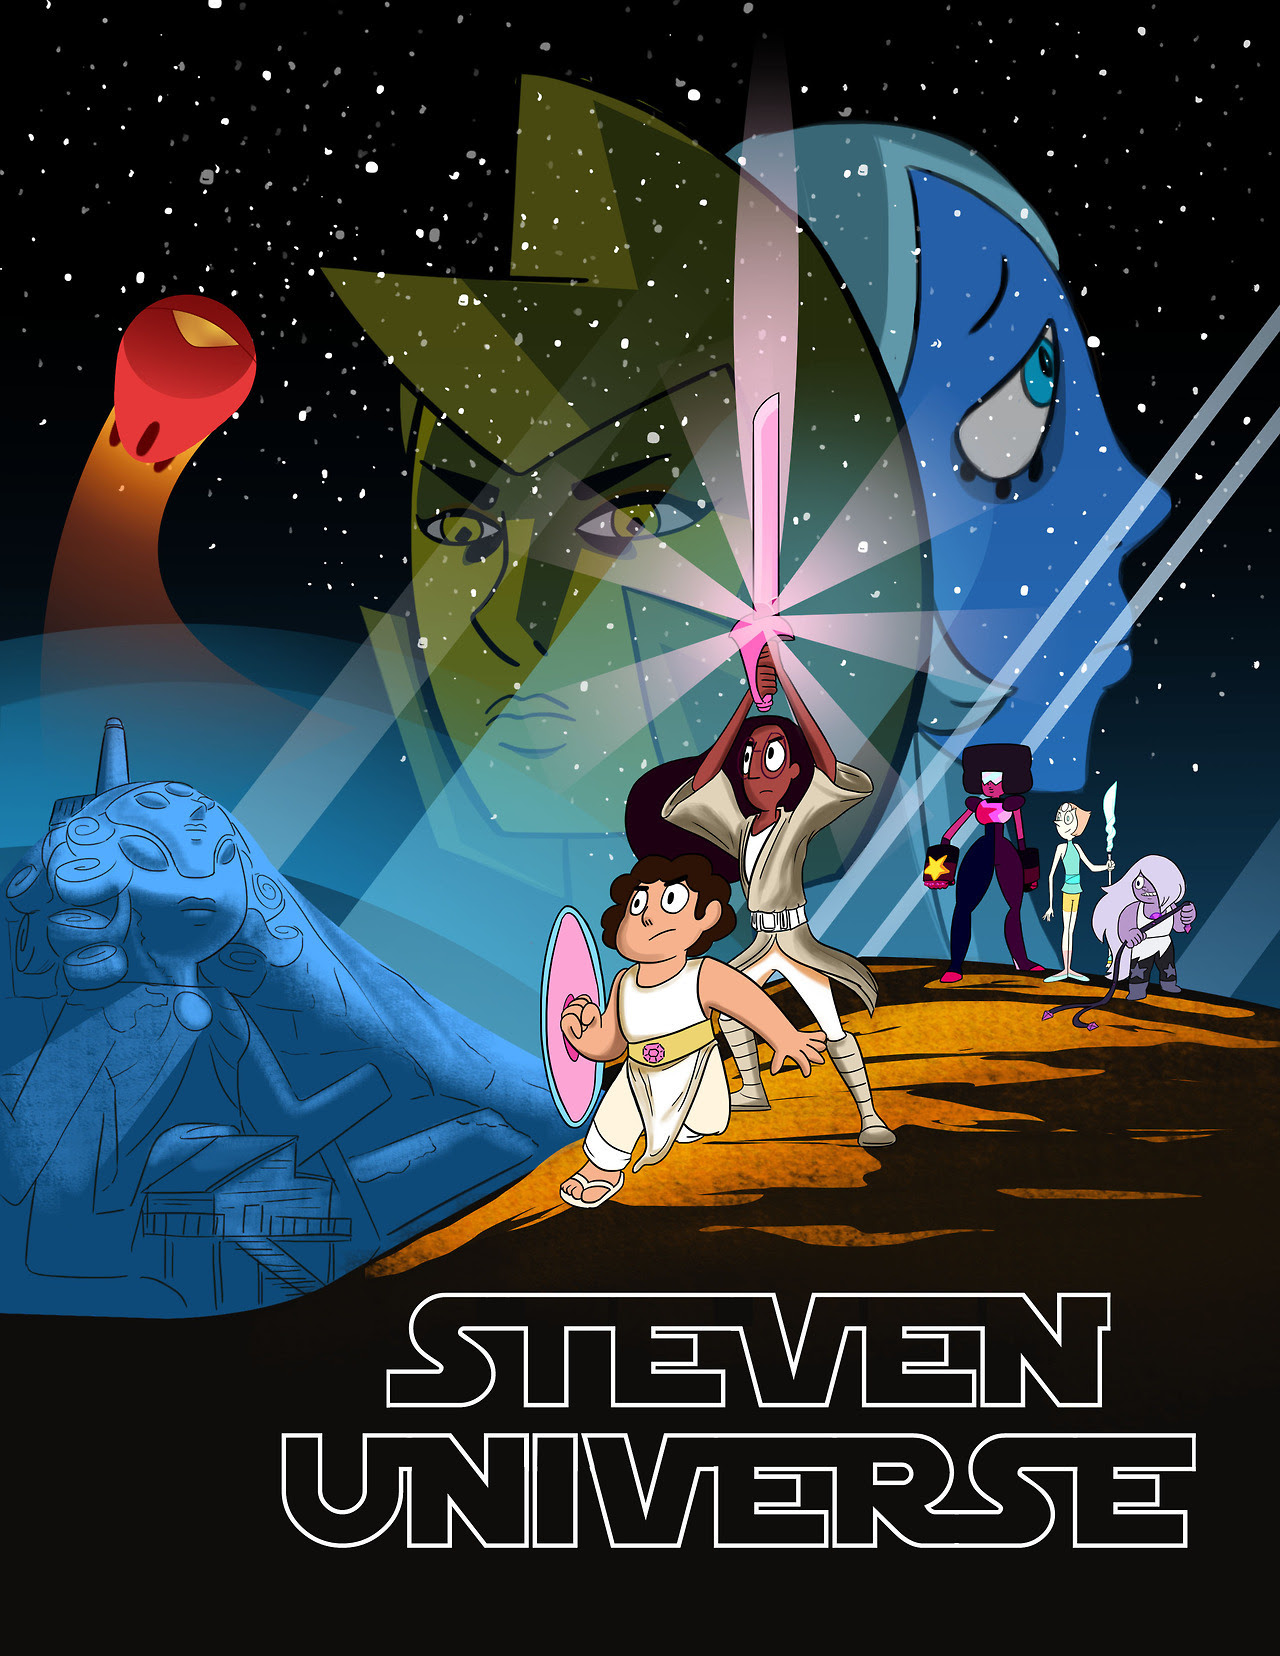 Finished my reimagined piece of Steven Universe. The hope for the galaxy has arrived !